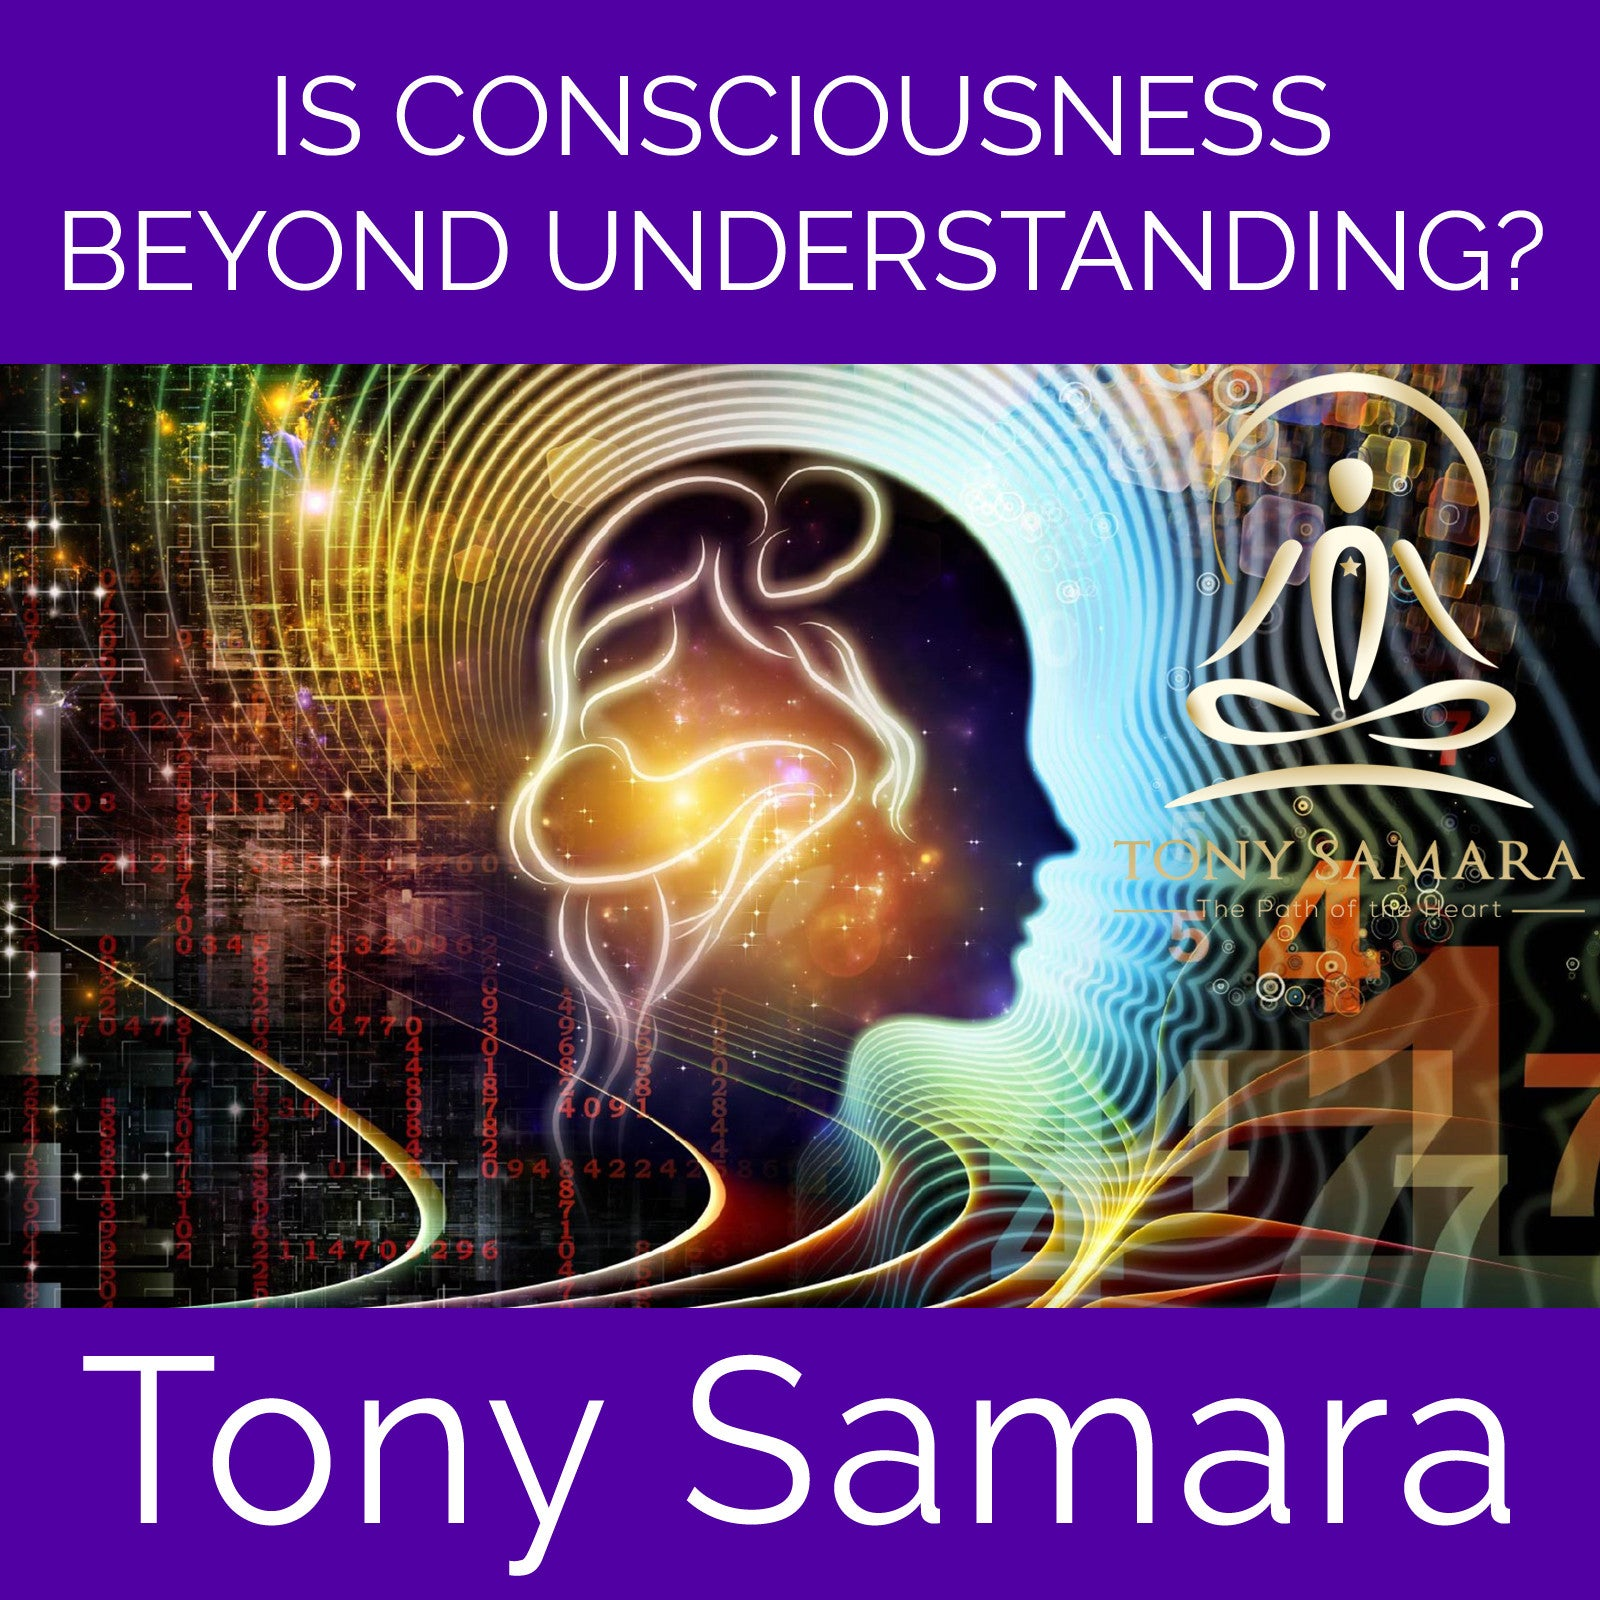 Is Consciousness Beyond Understanding? (MP3 Audio Download) - Tony Samara Meditation